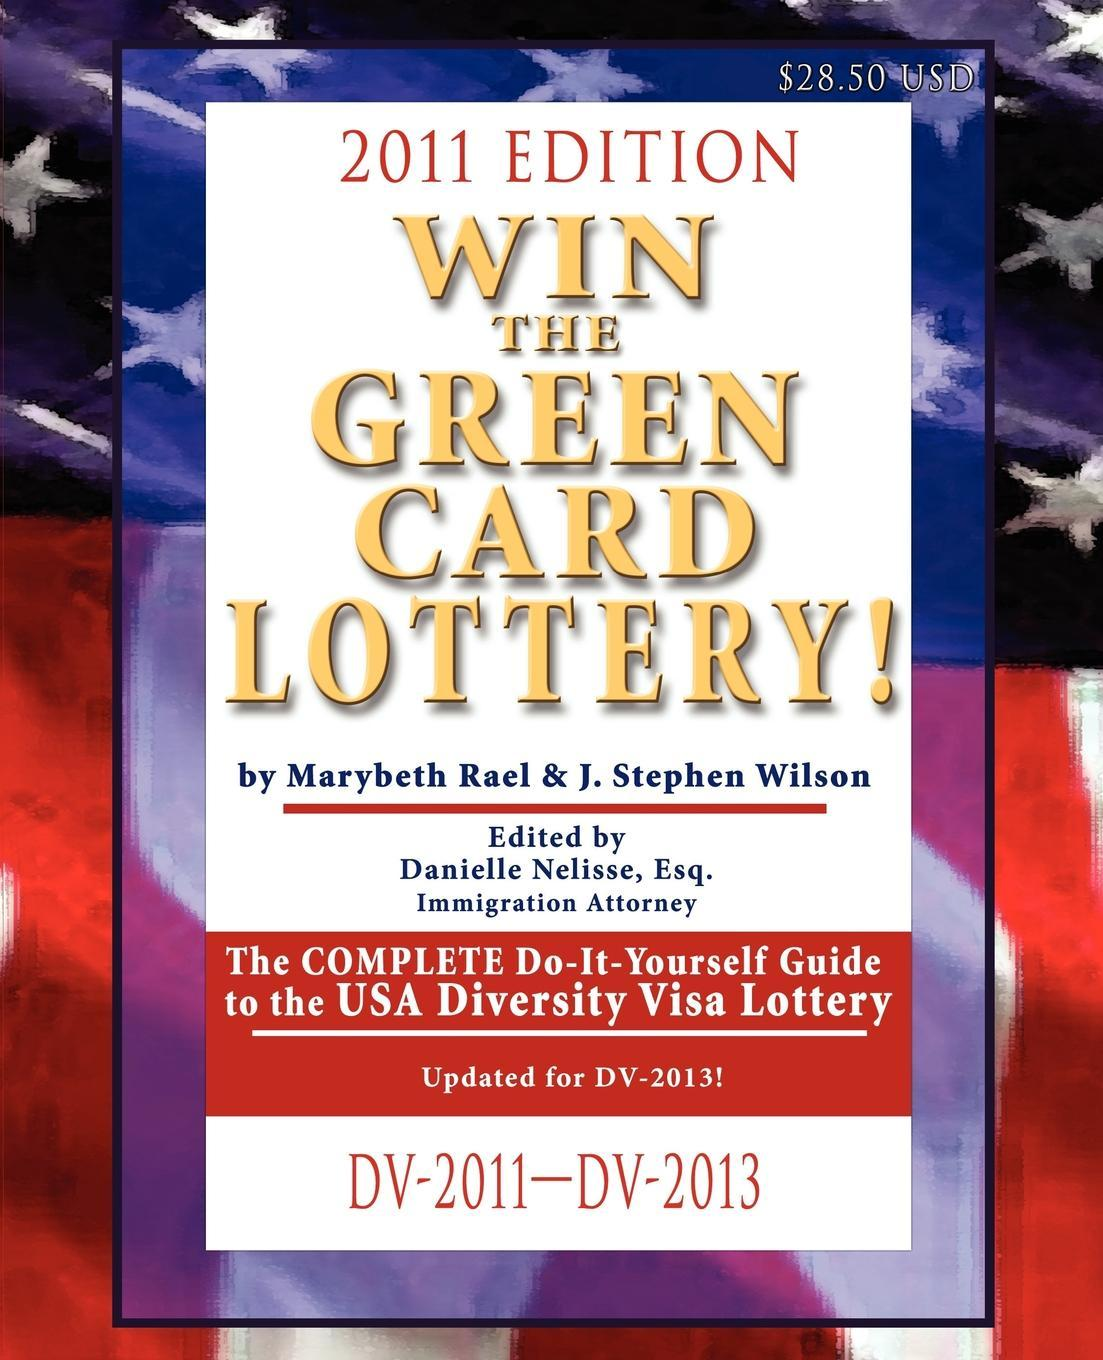 Win the Green Card Lottery!: The COMPLETE Do-It-Yourself Guide, 2011 Ed. EB9780981693866